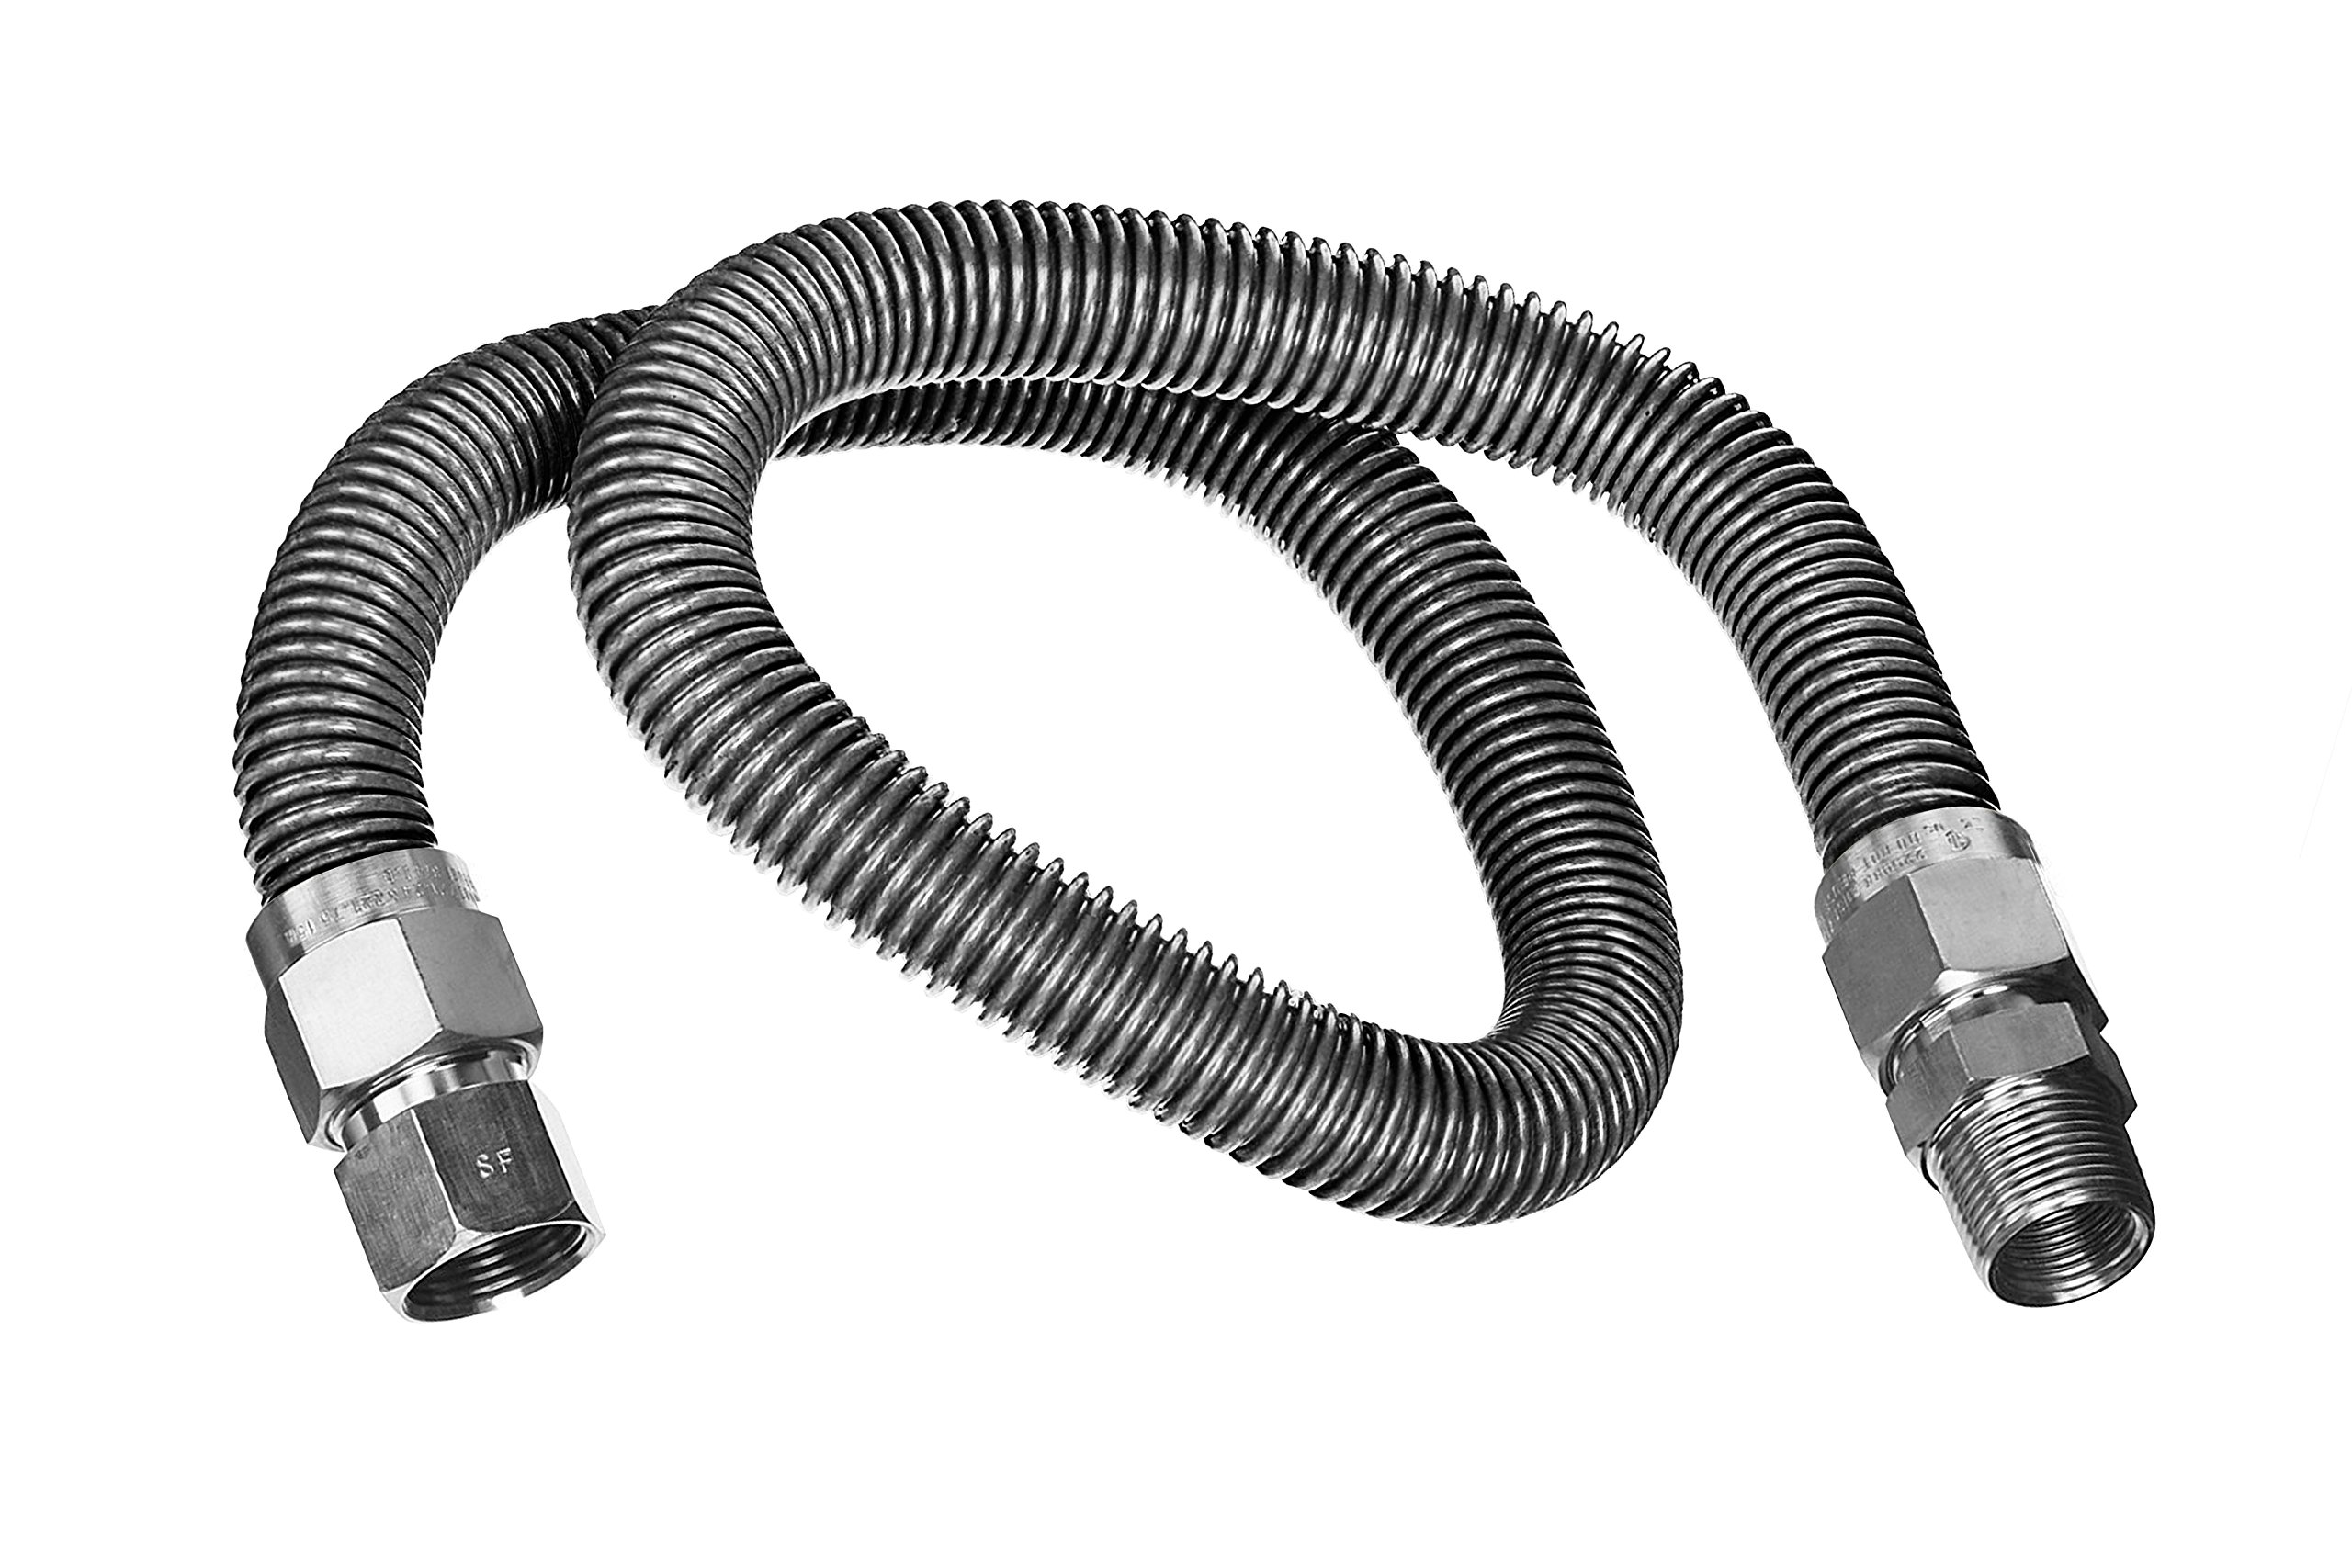 Flextron FTGC-SS14-72C 72 Inch Flexible Gas Line Connector with 3/8 Inch Outer Diameter & 1/2 Inch FIP x 1/2 Inch MIP Fittings, Uncoated Stainless Steel Space Heater Connectors, CSA Approved